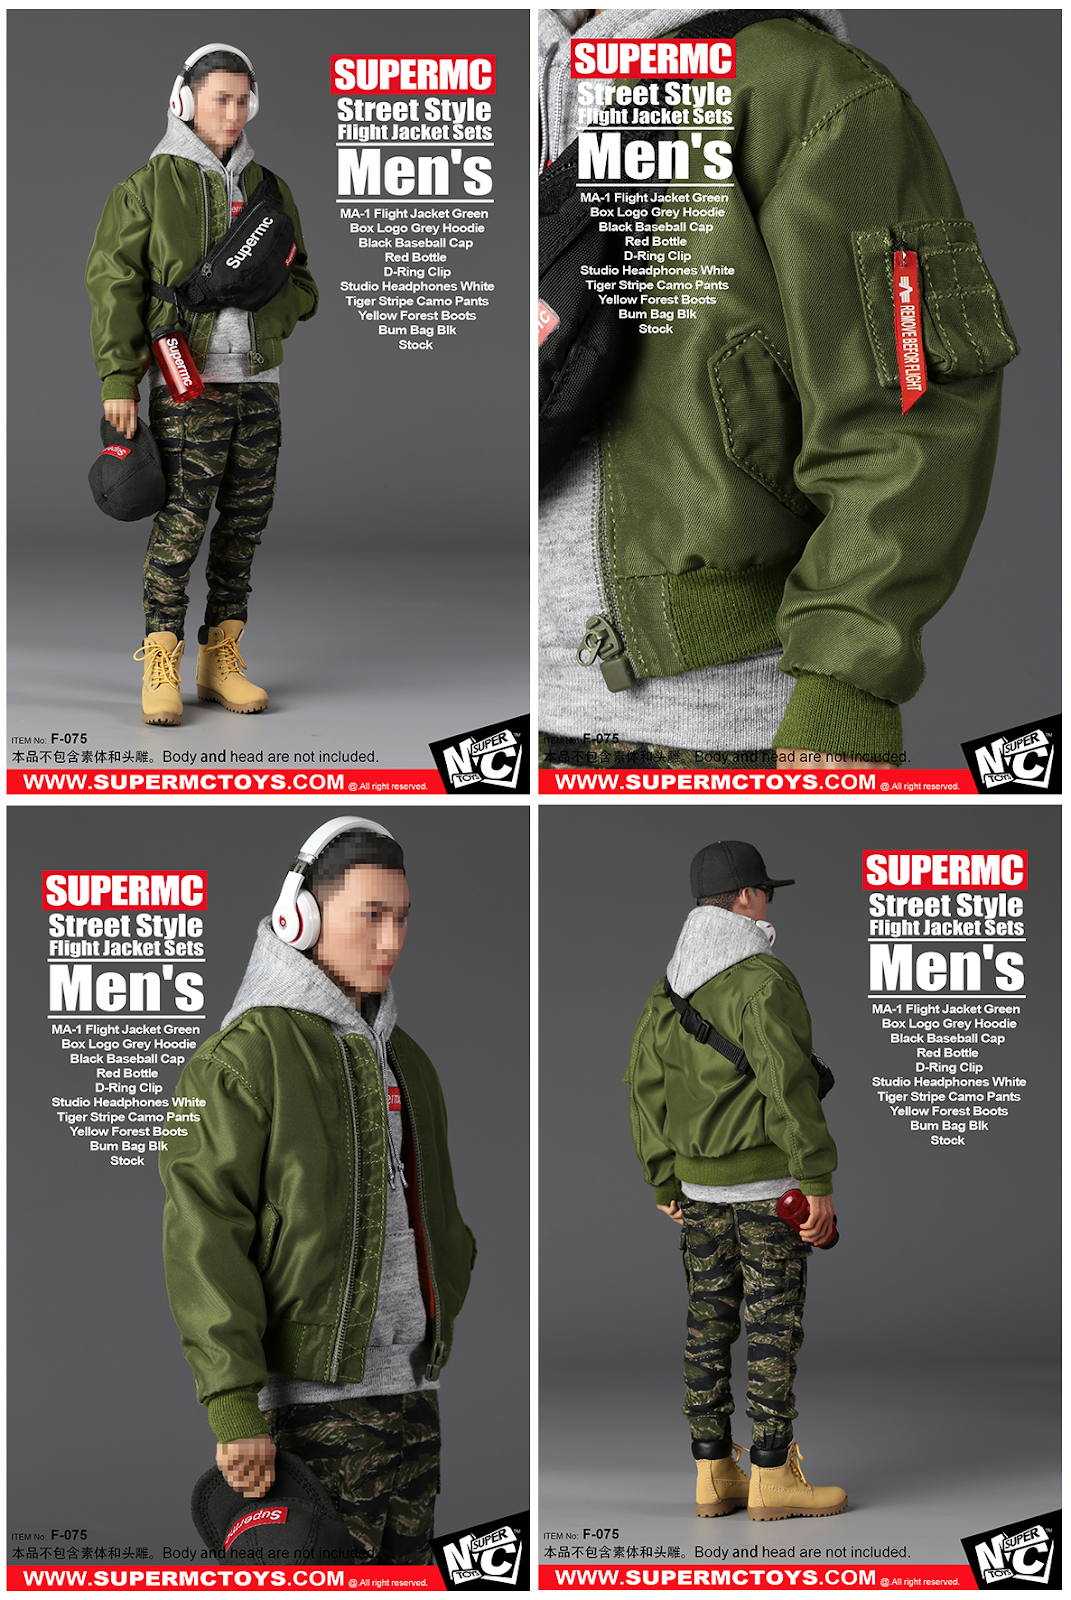 1 6 Street Styled Flight Jacket Sets For Mens Womens By Supermctoys Jaket Anime Shingeki No Kyojin Green Hoodie Kode Z 04 From China Based Supermctoyscom Comes Style Featuring The Following Accessories